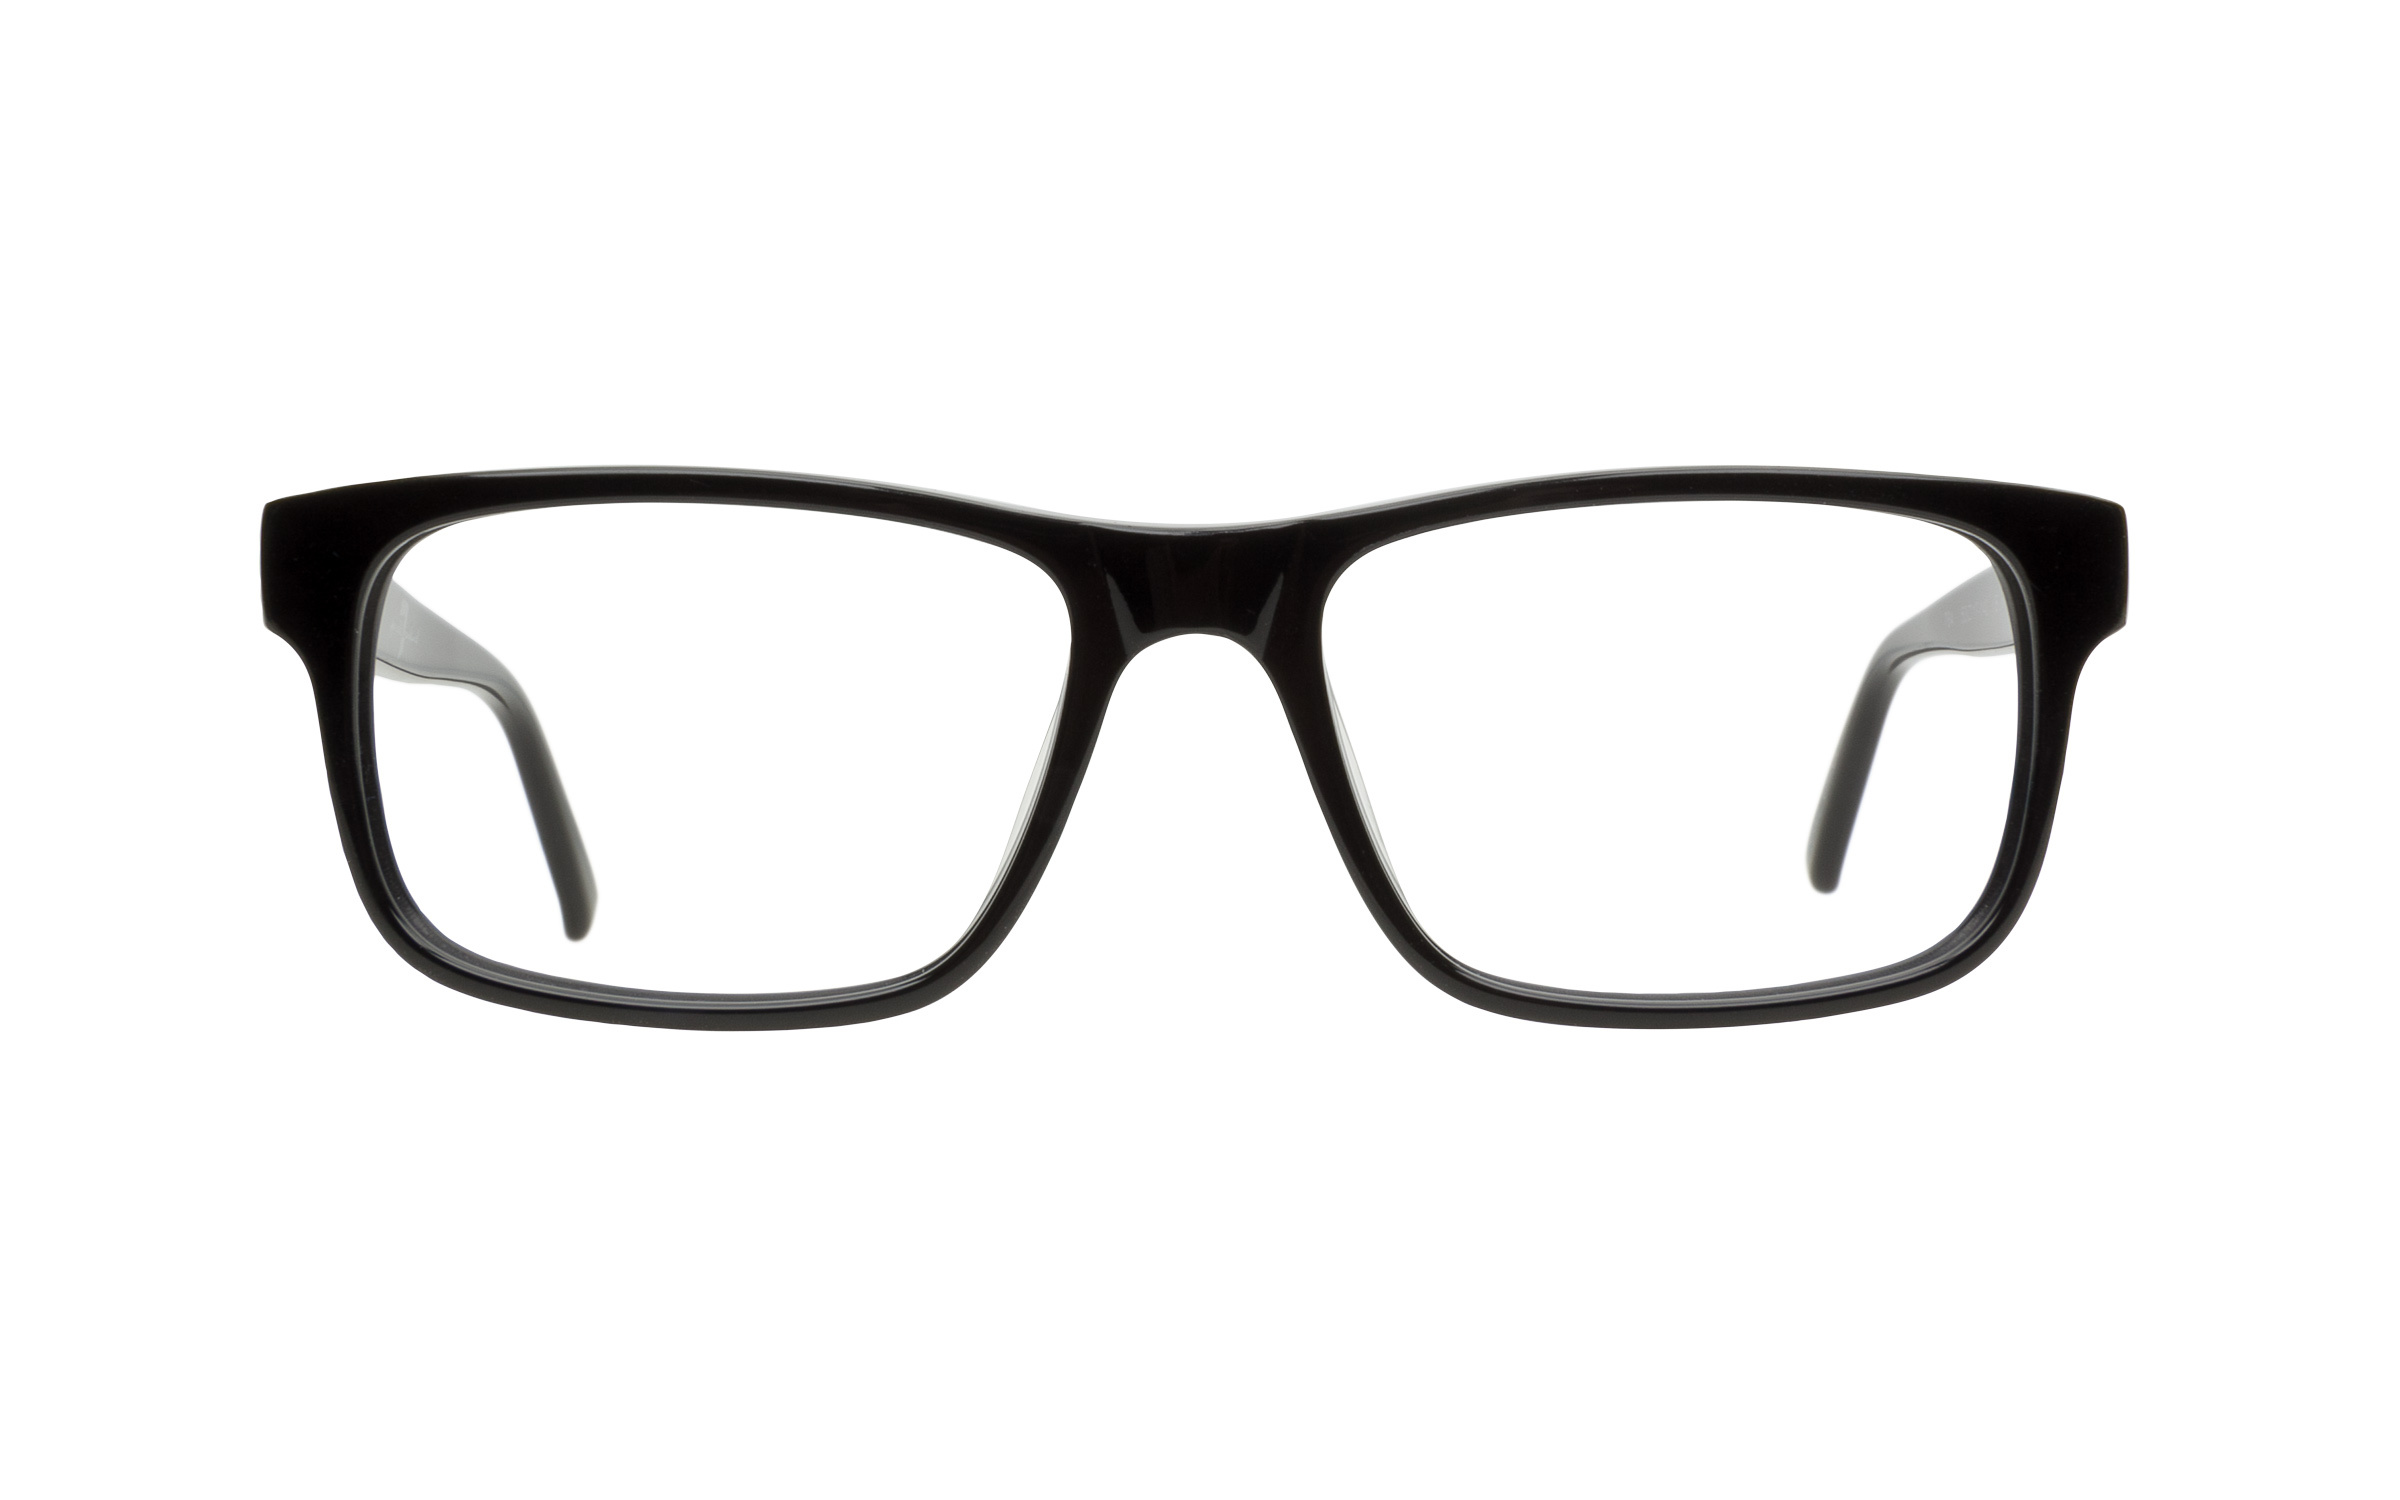 7 For All Mankind 764 Eyeglasses and Frame in Black | Acetate - Online